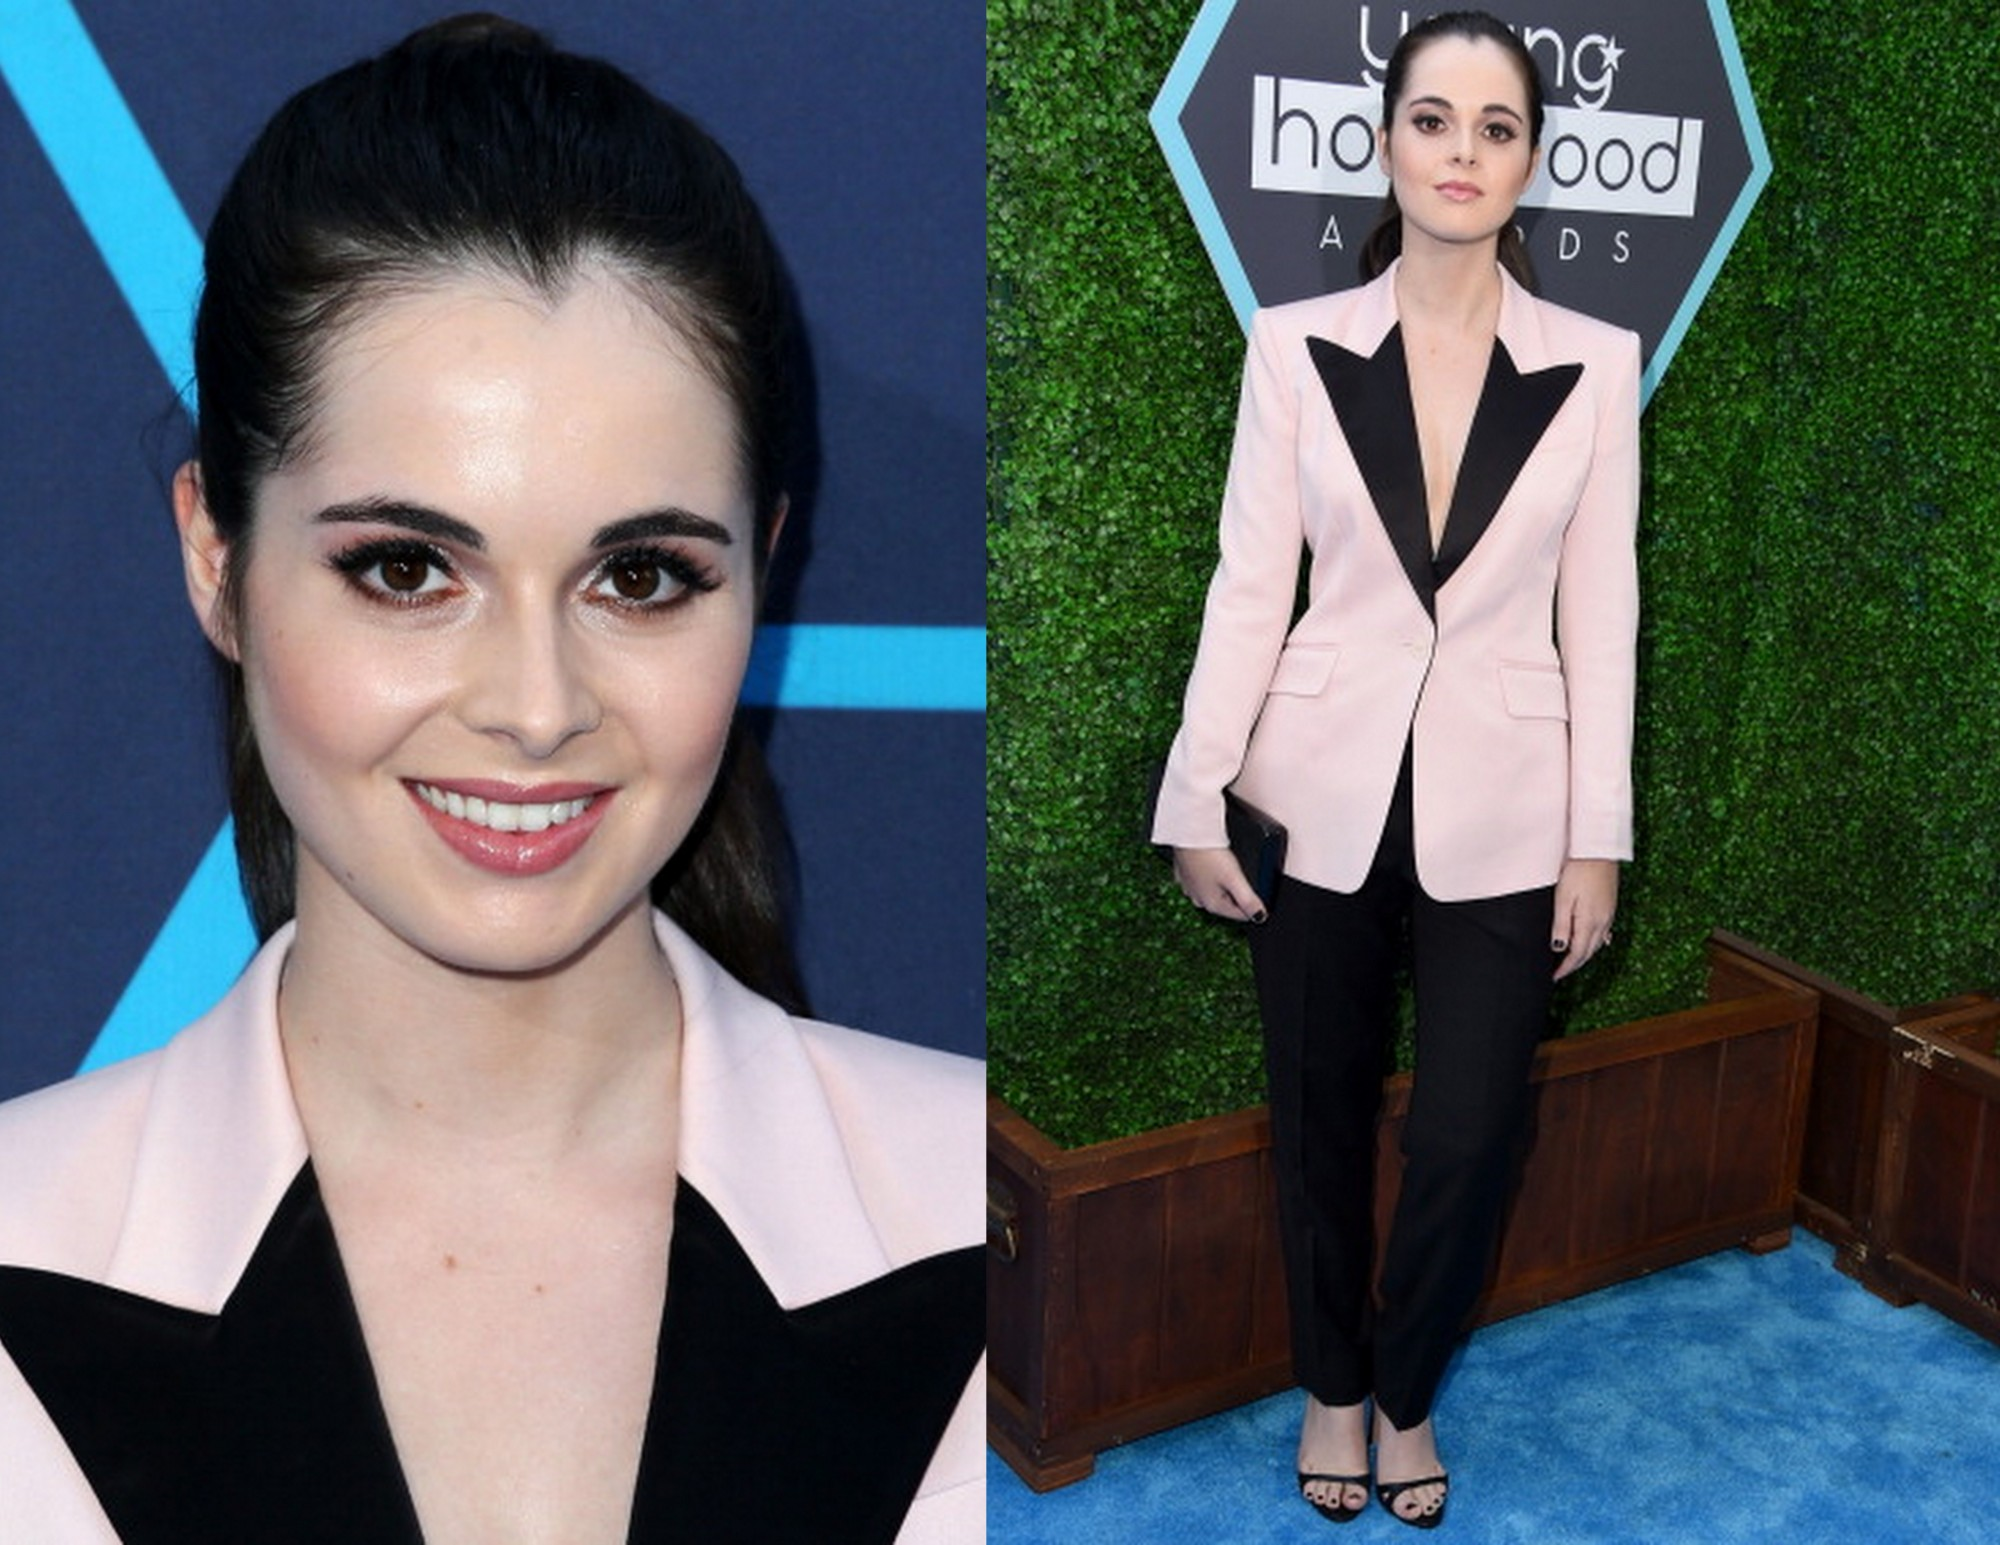 Vanessa Marano Skaist Taylor Anthony Franco 2014 Young Hollywood Awards e1406560715674  Vanessa Marano Wearing Skaist Taylor & Anthony Franco at  Young Hollywood Awards 2014